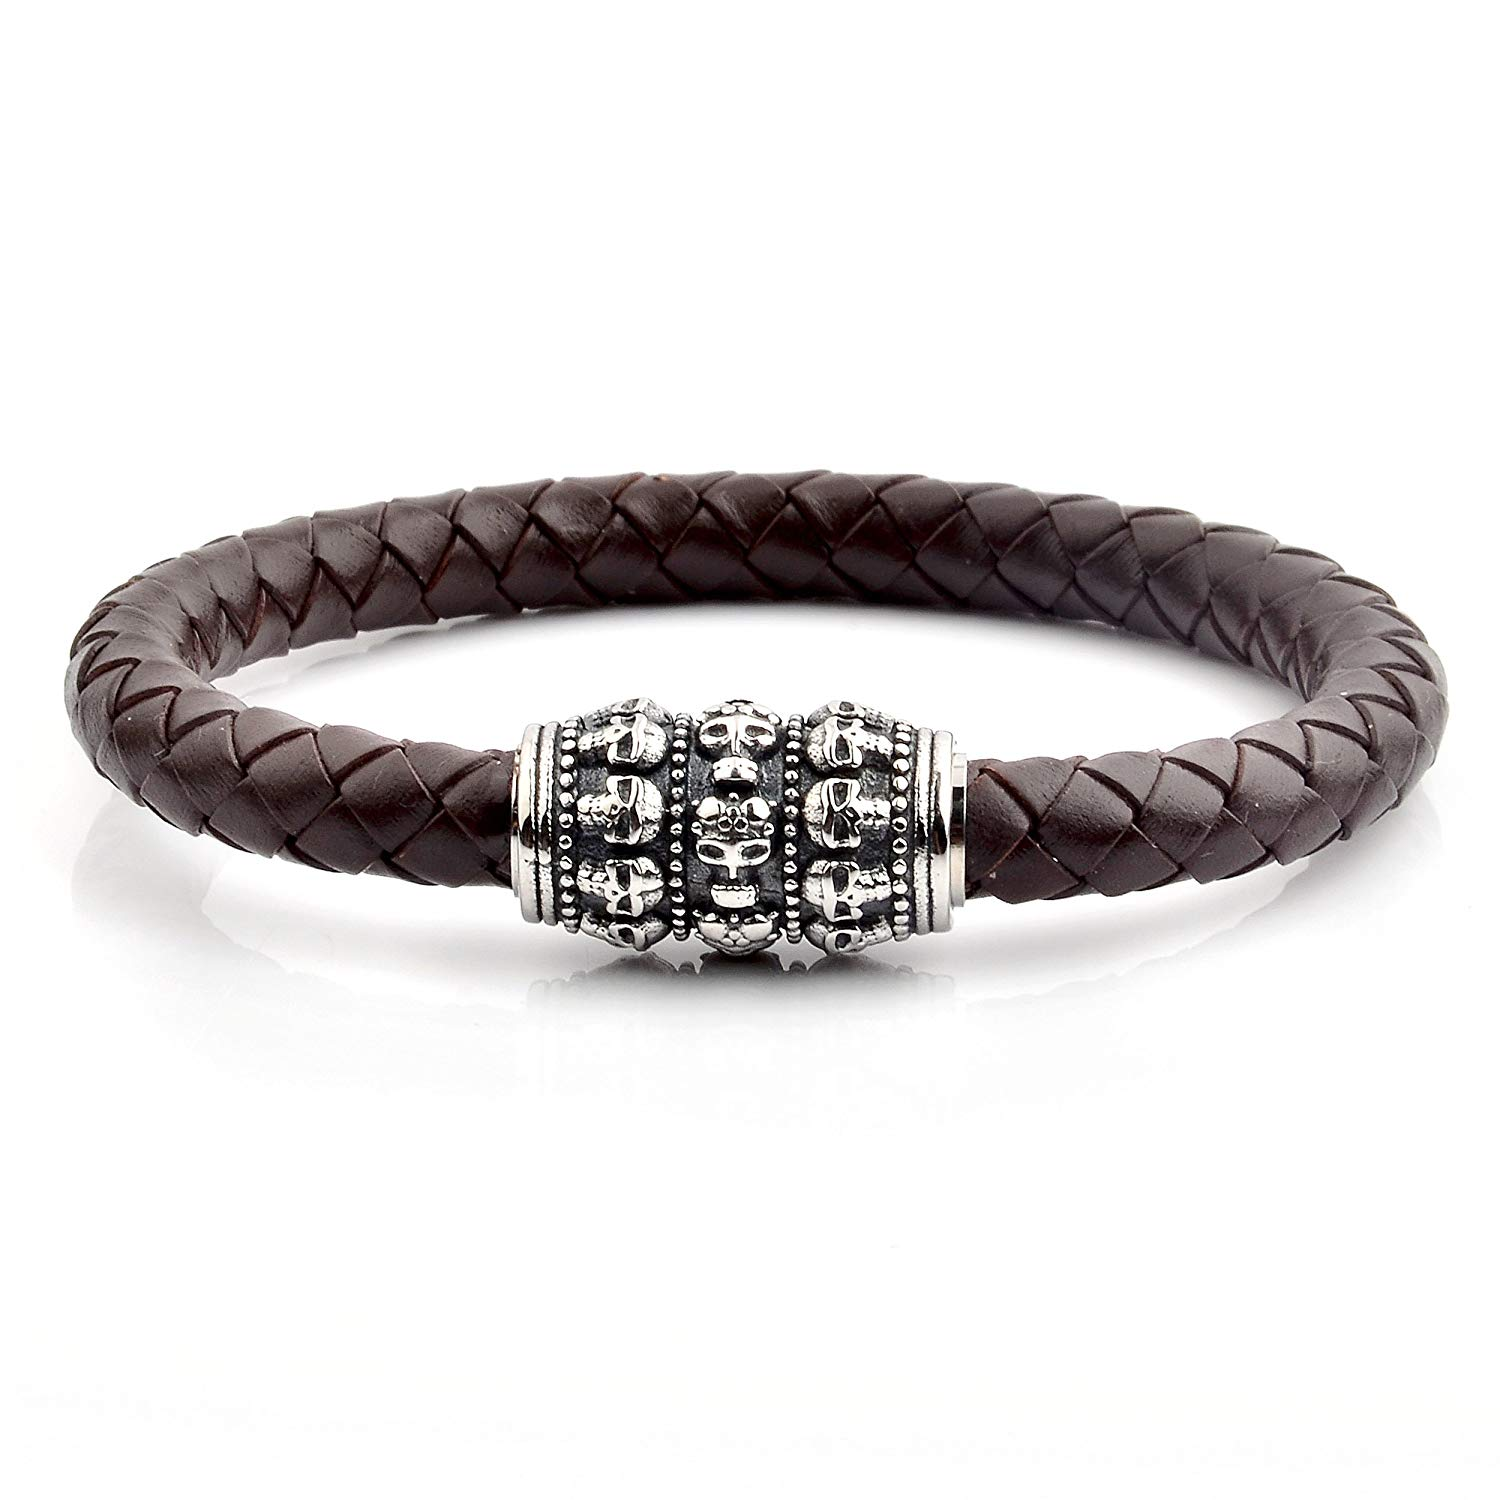 Crucible Antique Finished Stainless Steel Skull Bead Genuine Brown Leather Braided Bracelet (14mm Wide) - 8.5 inches Long